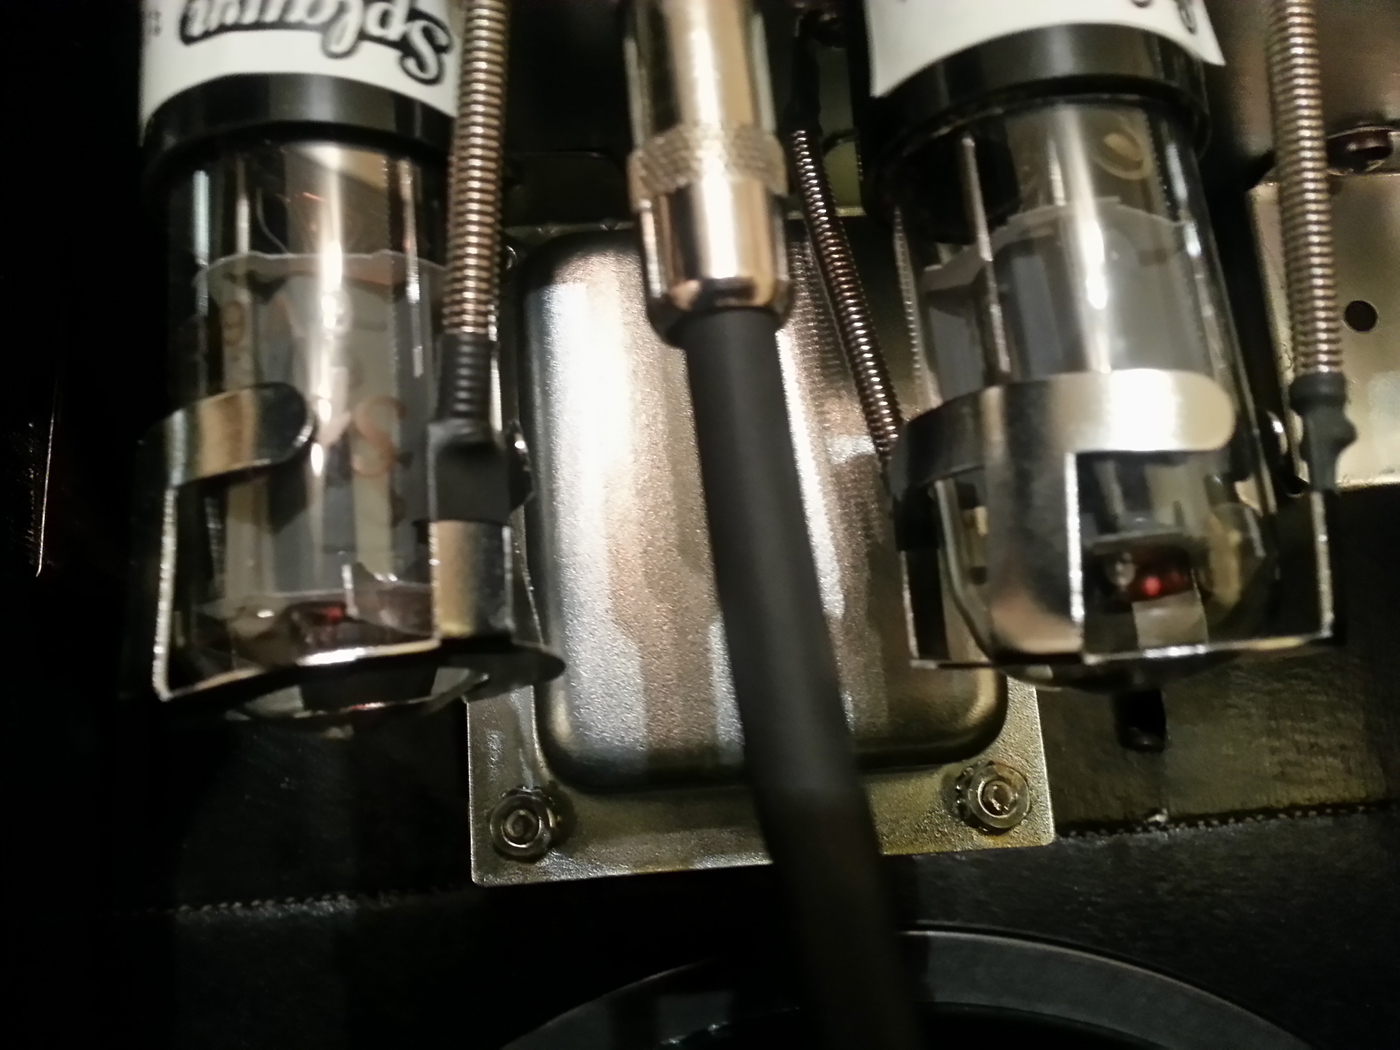 Splawn SuperSport - Bad Tube?   The Gear Page